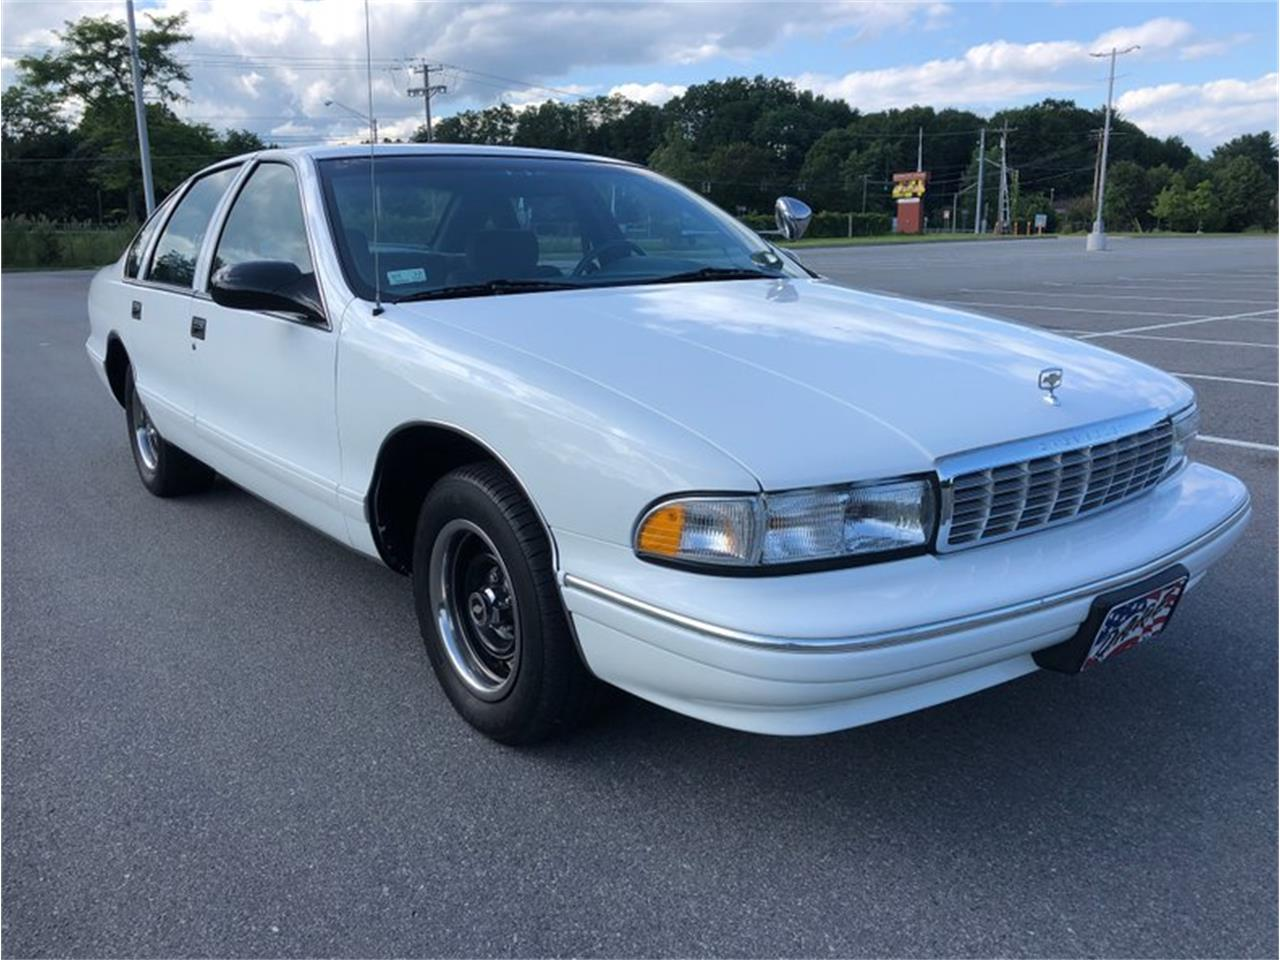 1995 chevrolet caprice for sale in saratoga springs ny classiccarsbay com 1995 chevrolet caprice for sale in